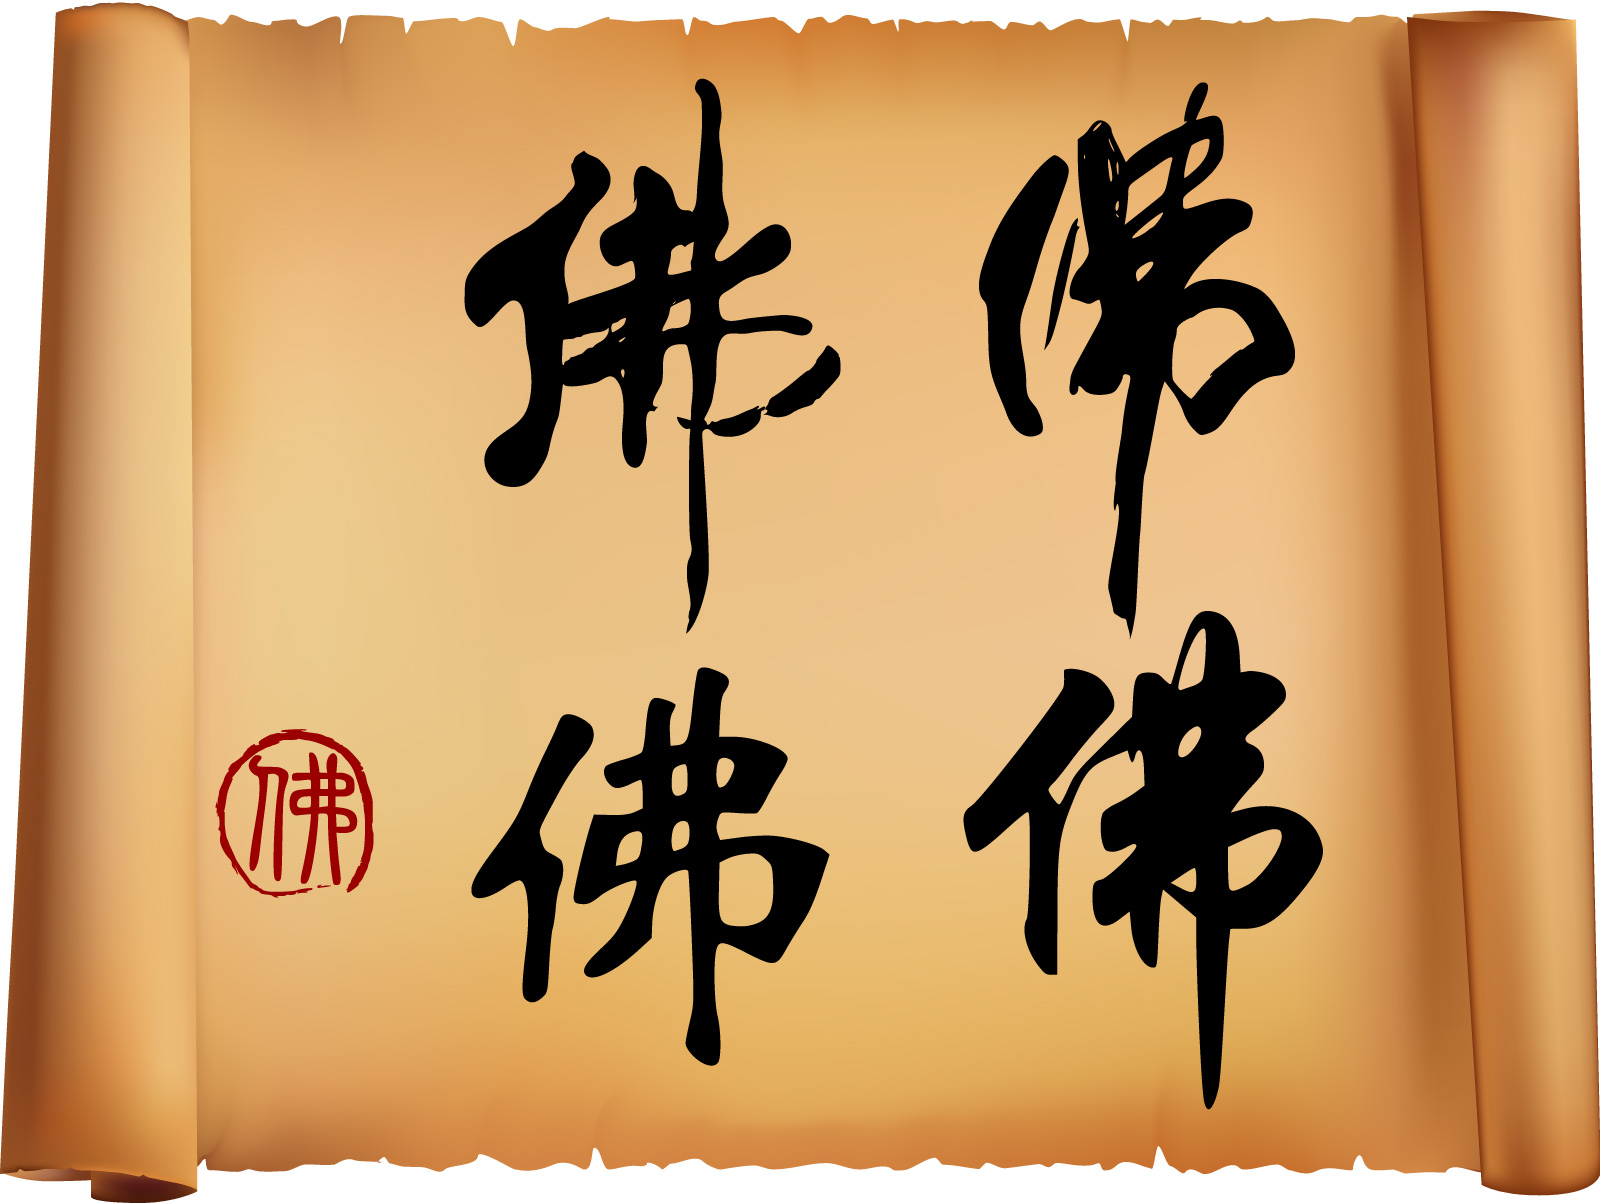 chinesefontdesign.com 2017 03 28 09 21 26 Written in different Chinese characters Buddha ancient kraft paper volume vector   China Illustrations Vectors AI ESP Chinese Buddhism Vectors Chinese Buddhism AI Chinese Buddhism